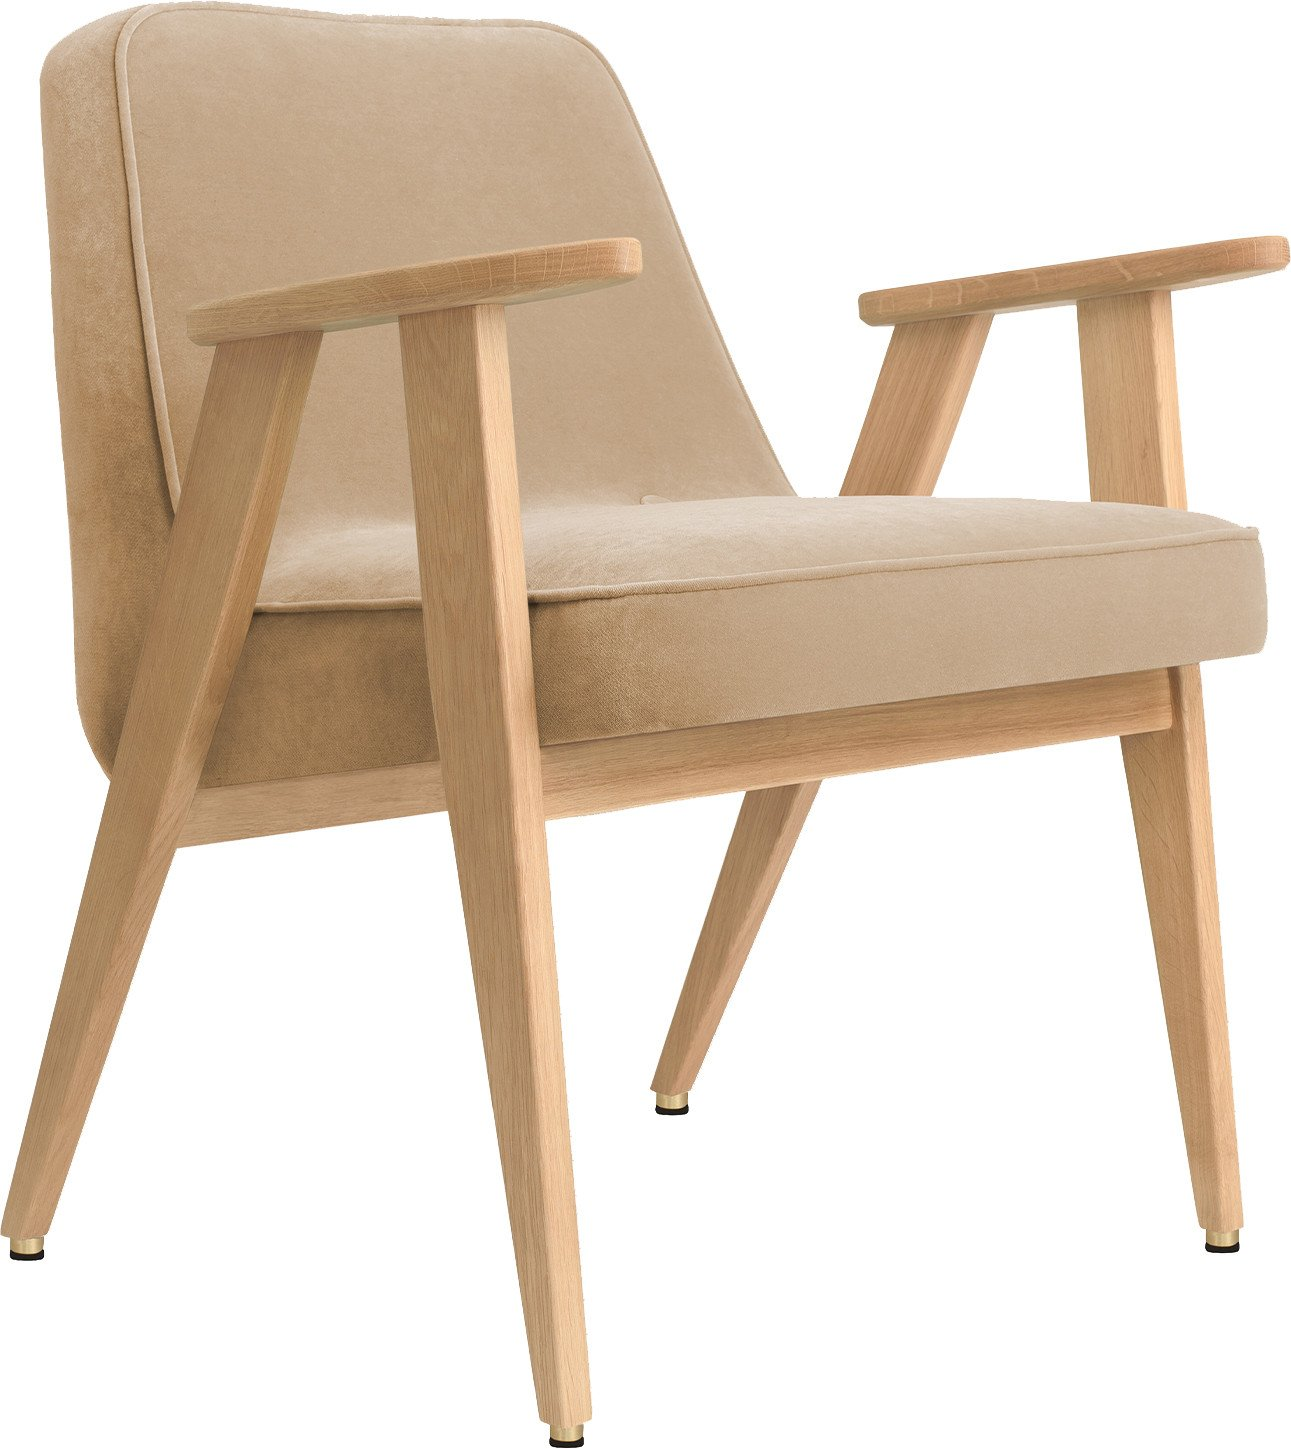 366 Plus Armchair Velvet Sand (natural oak) by Józef Chierowski